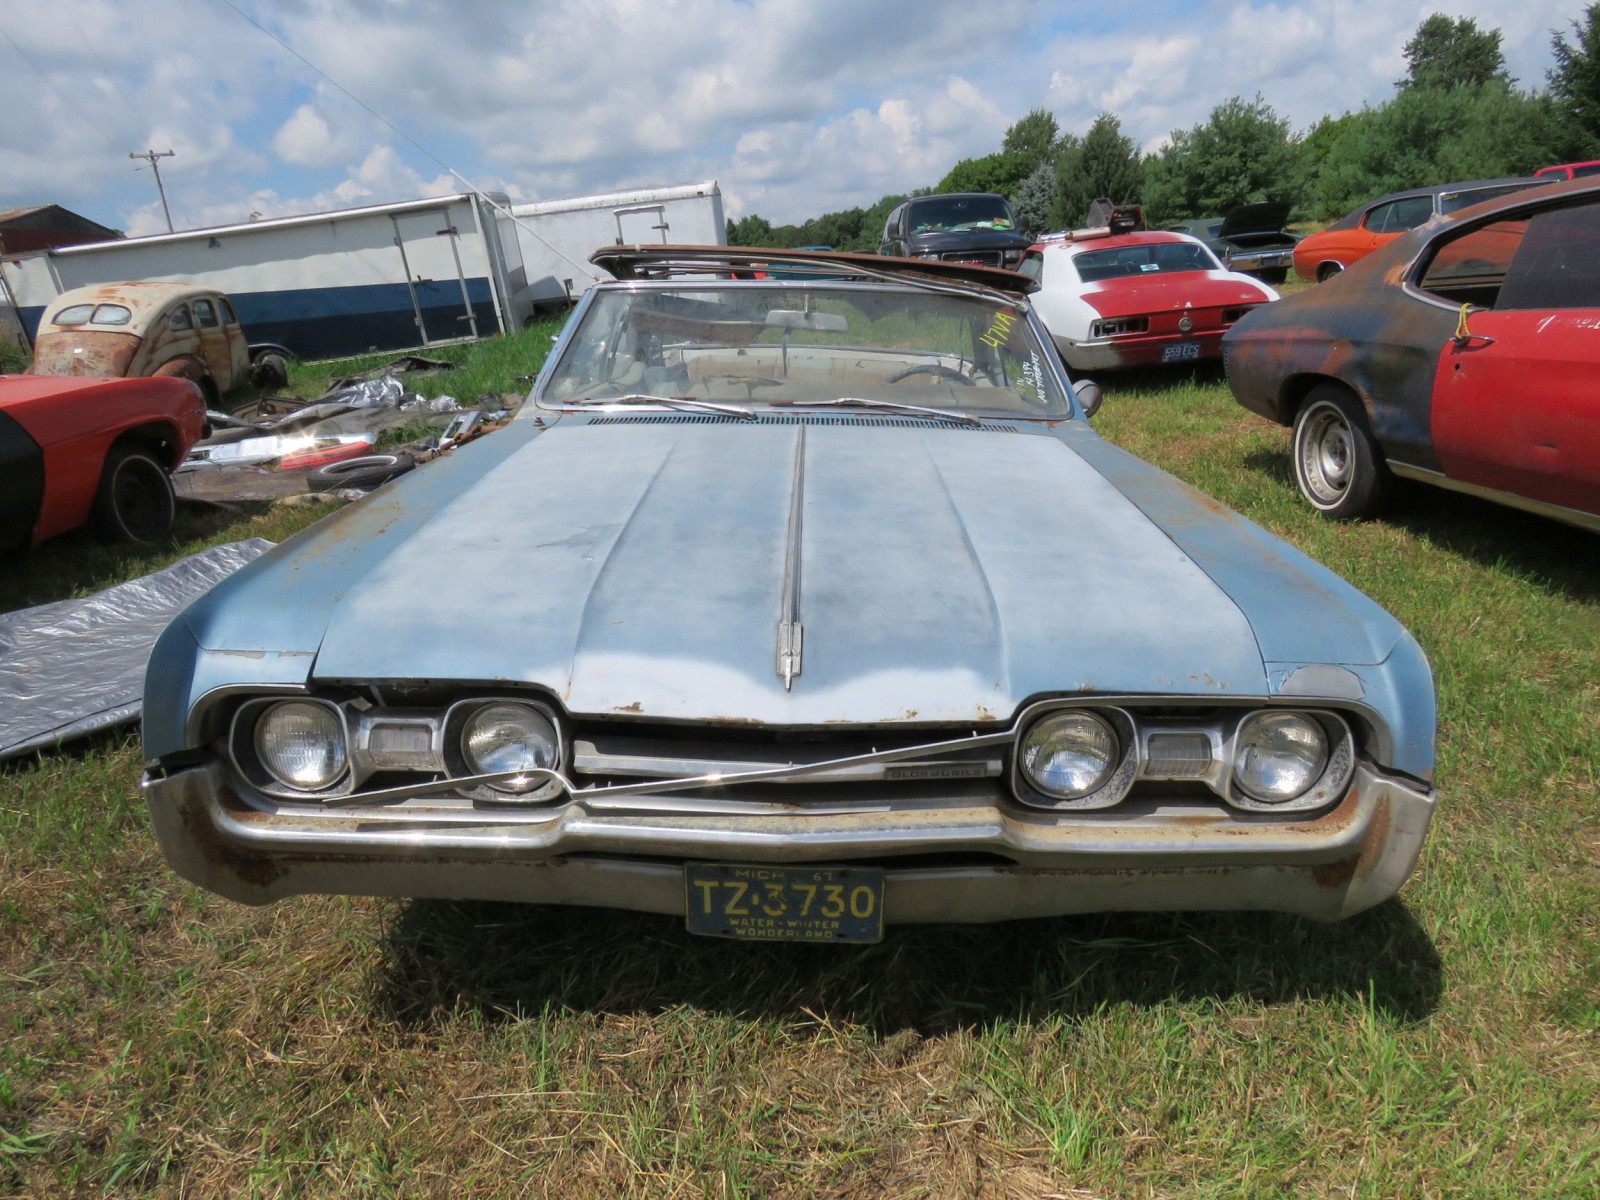 1967 Oldsmobile Cutlas Convertible Parts Car - Image 2